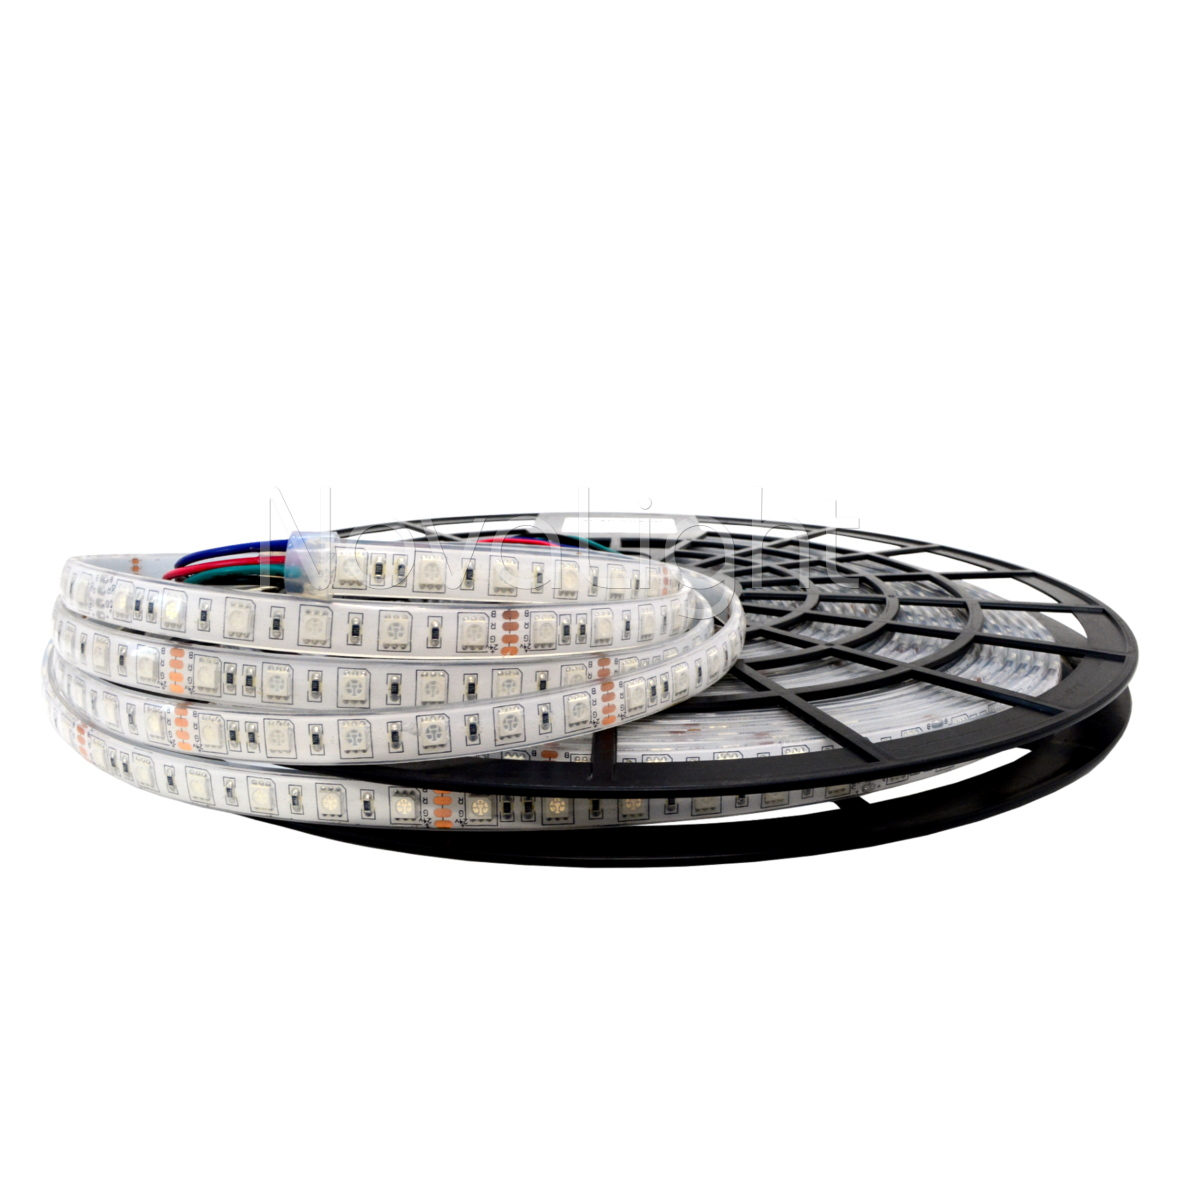 Tira 10 Metros LED RGB 5050 Multicolor Sumergible IP68